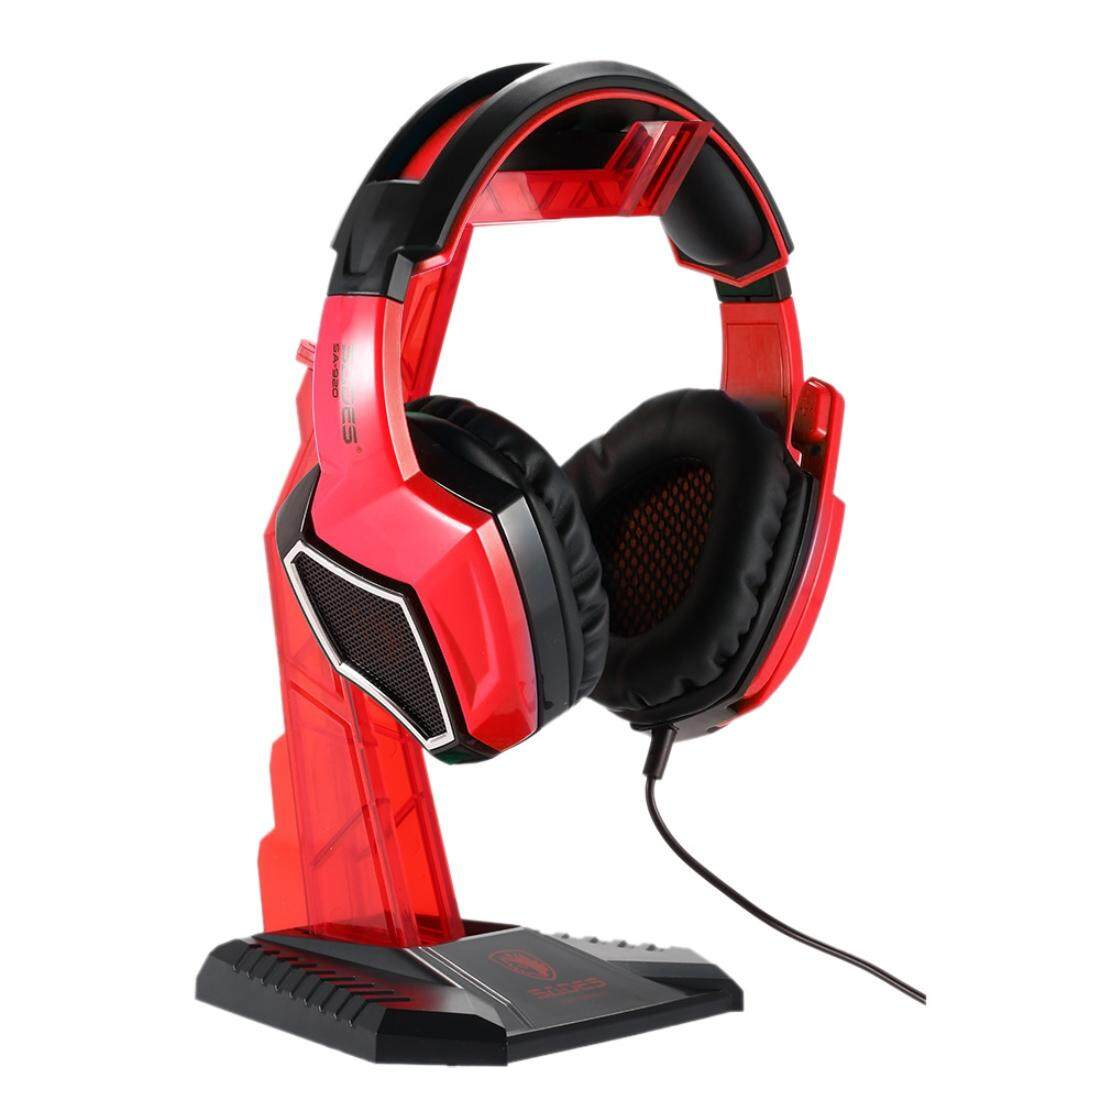 SADES Universal Multi-function Gaming Headphone Hanger Desk Headset Stand Holder Display Rack(Red